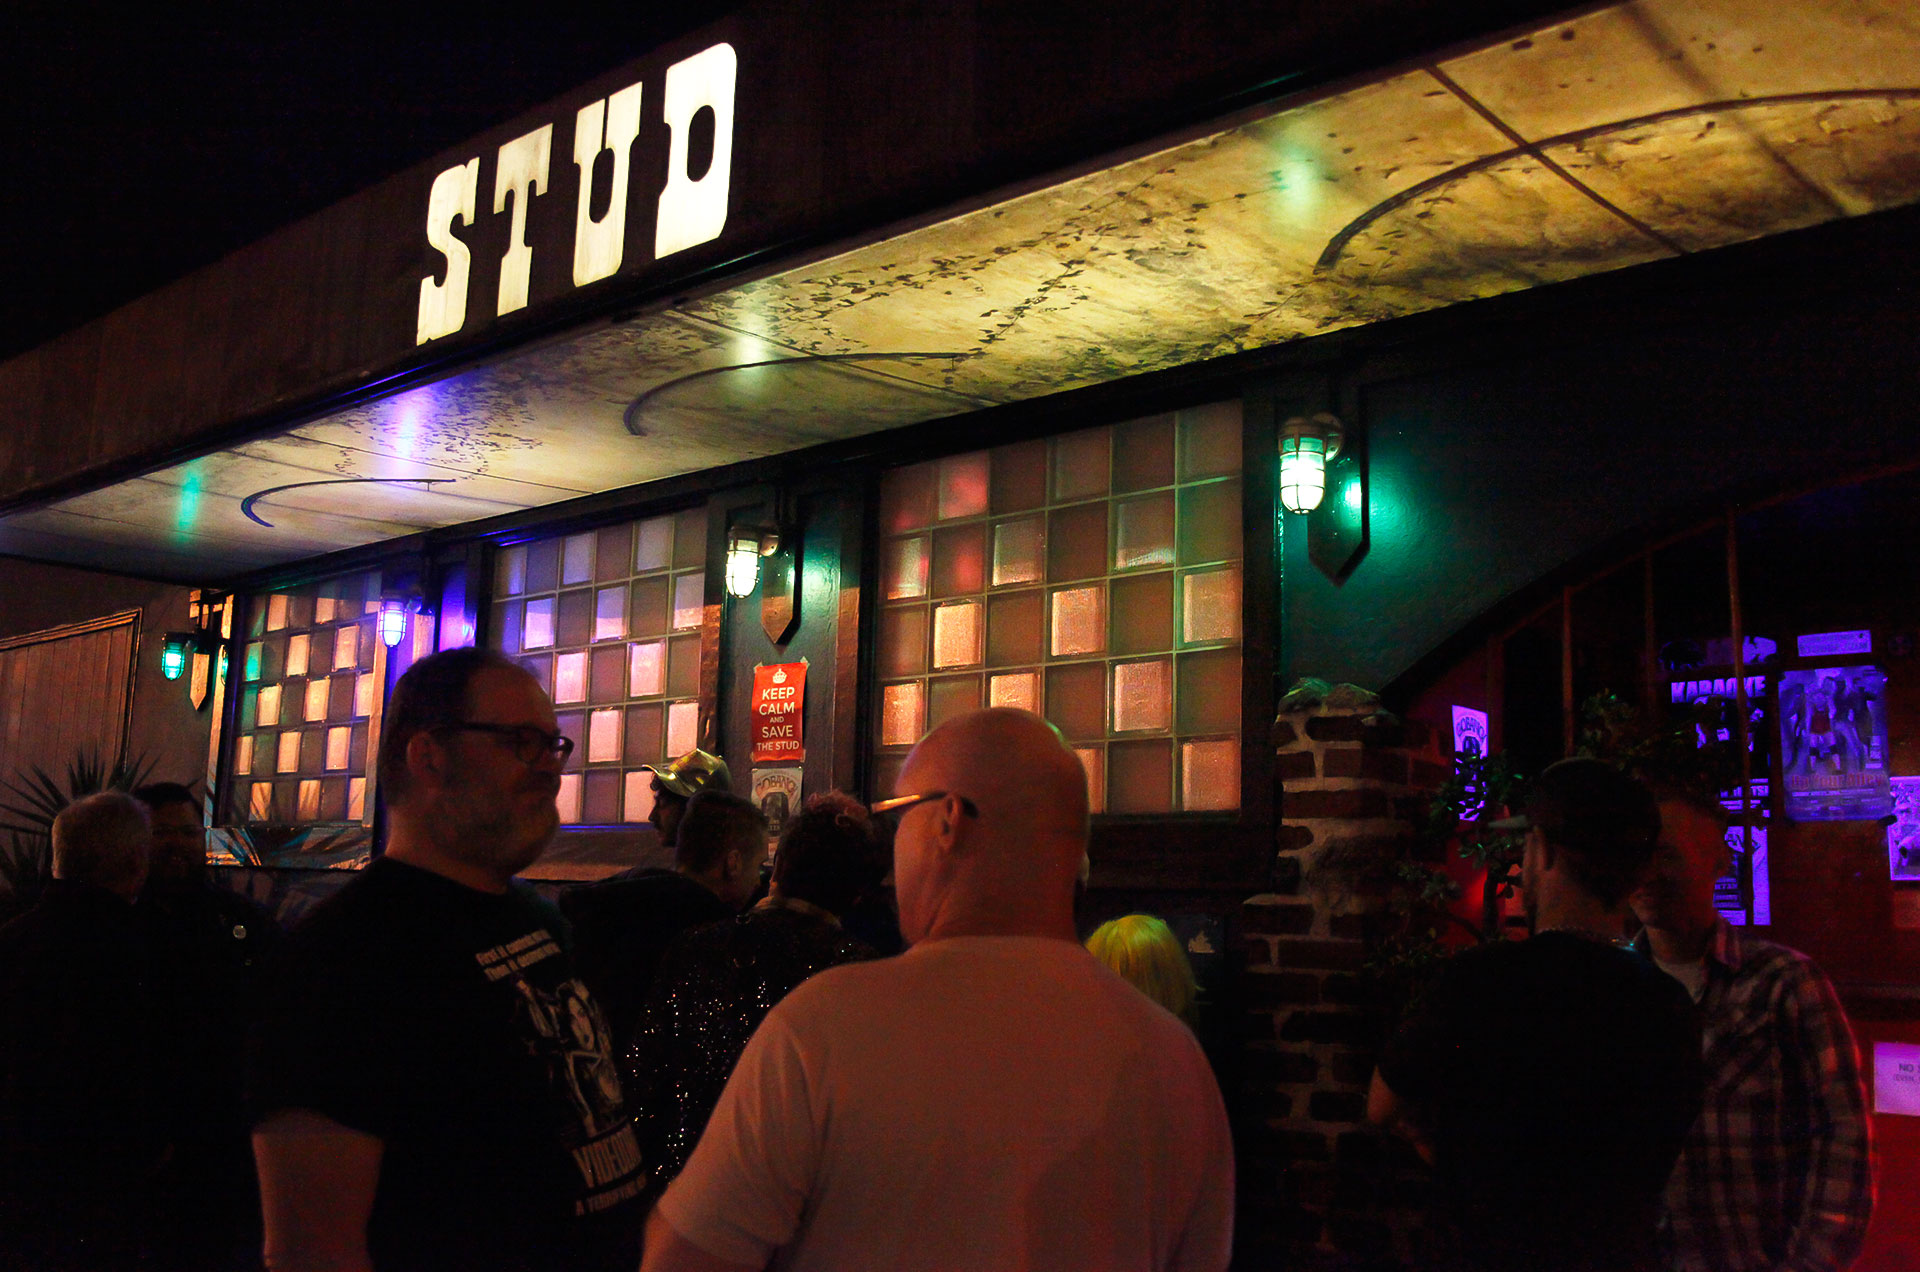 Patrons of the Stud Bar mingle outside during an intermission for the night's cabaret show.